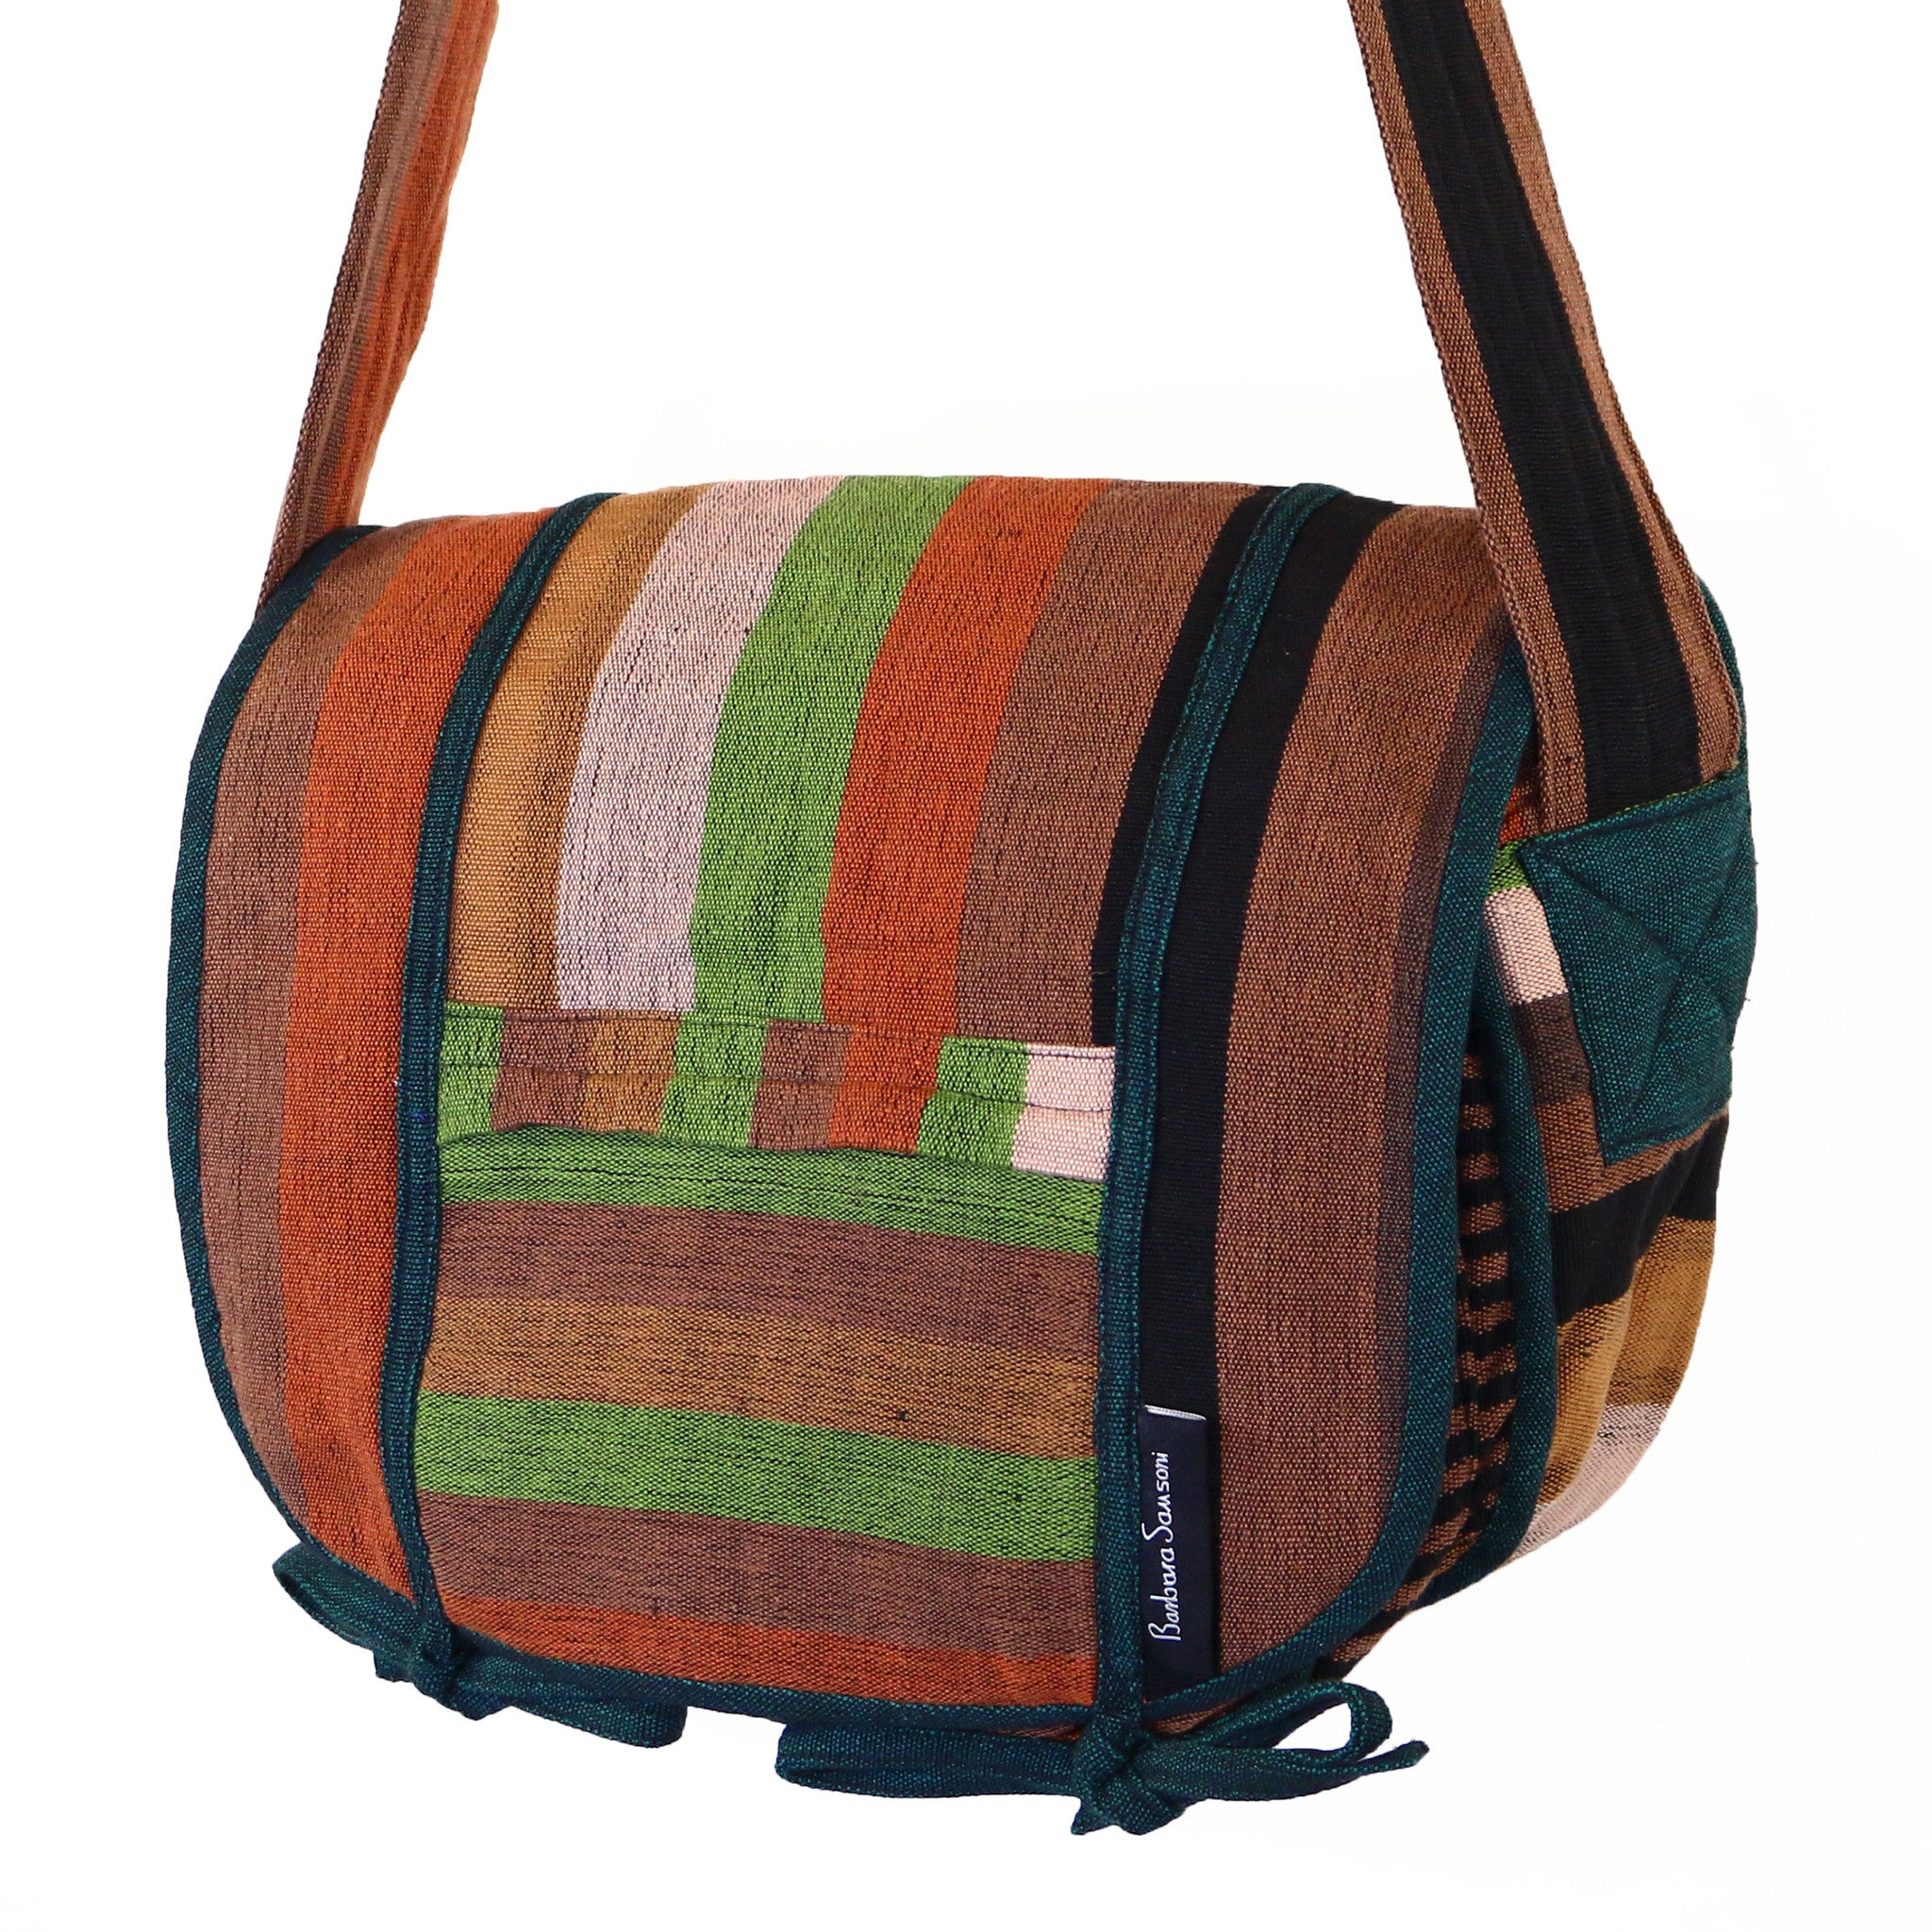 Barefoot Handwoven Messenger Bag - Sahara fabric shown